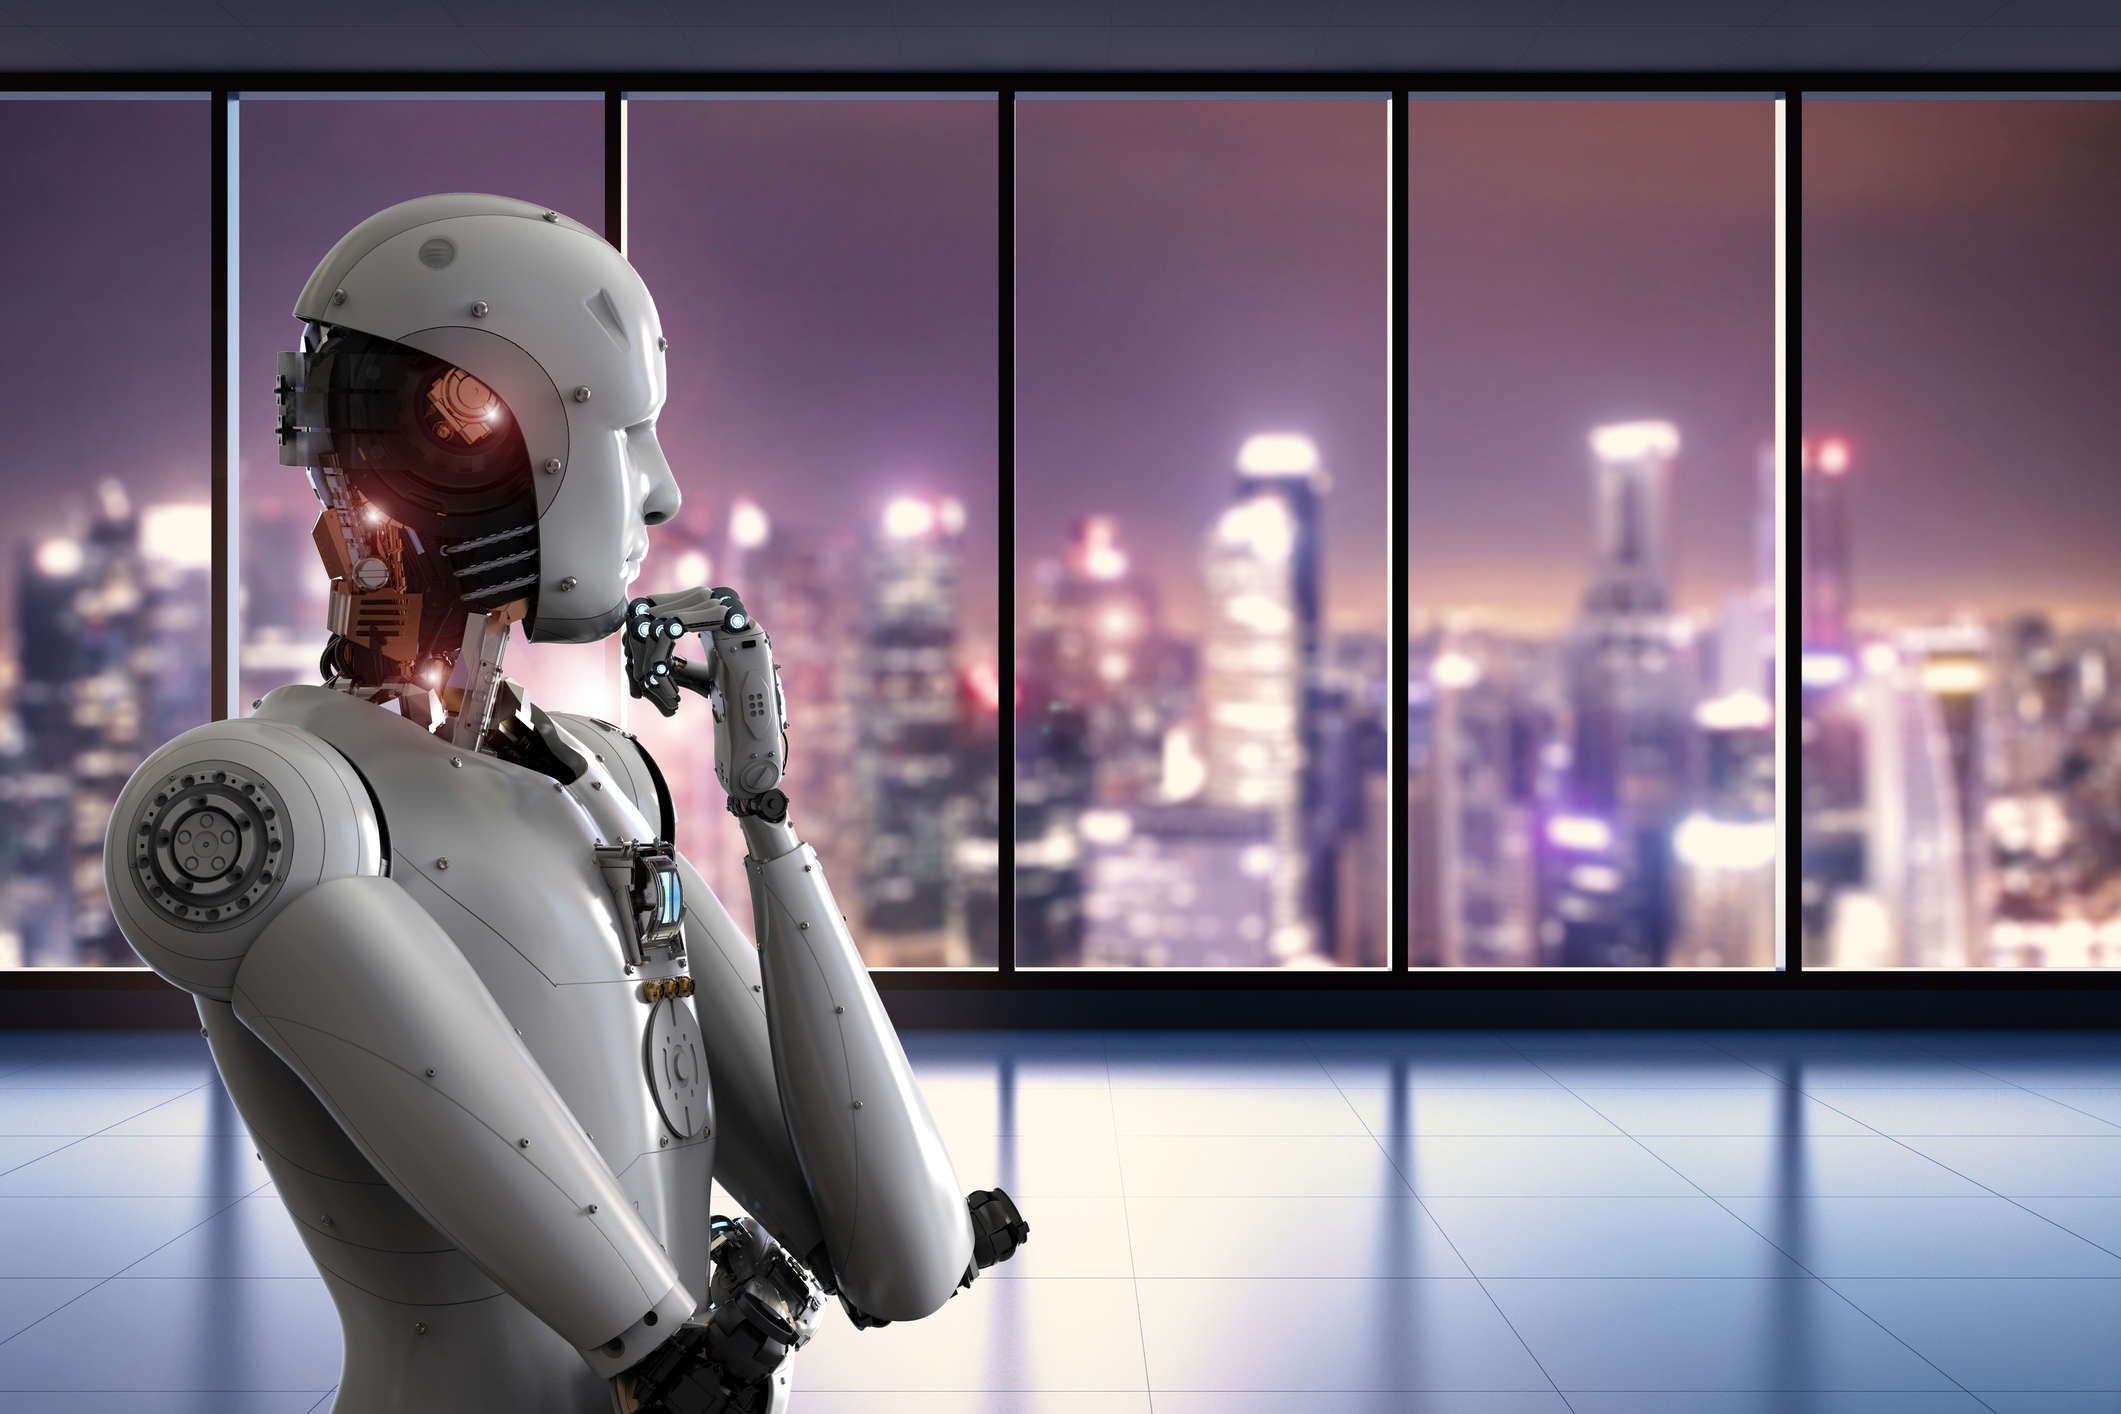 How Artificial Intelligence will disrupt online shopping… - Image 1